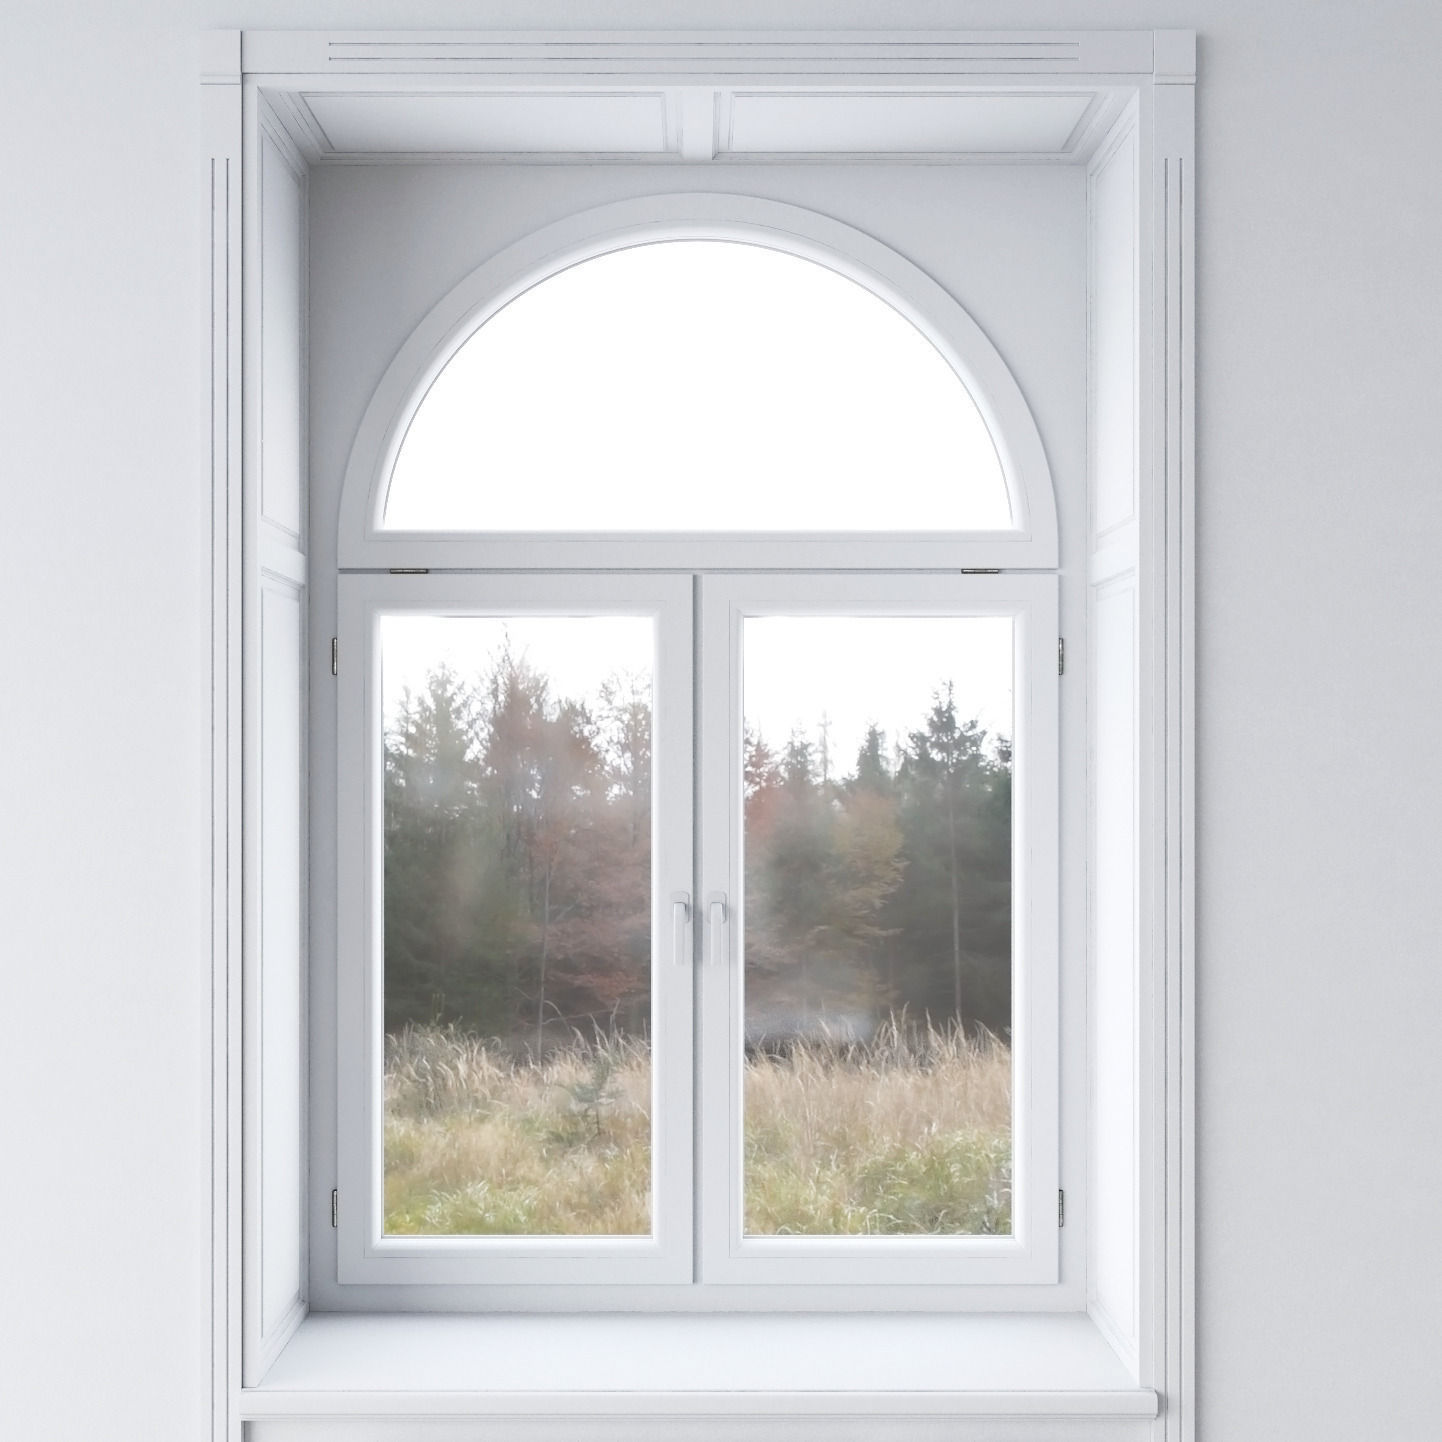 White window 3d model max obj fbx for Window 3d model